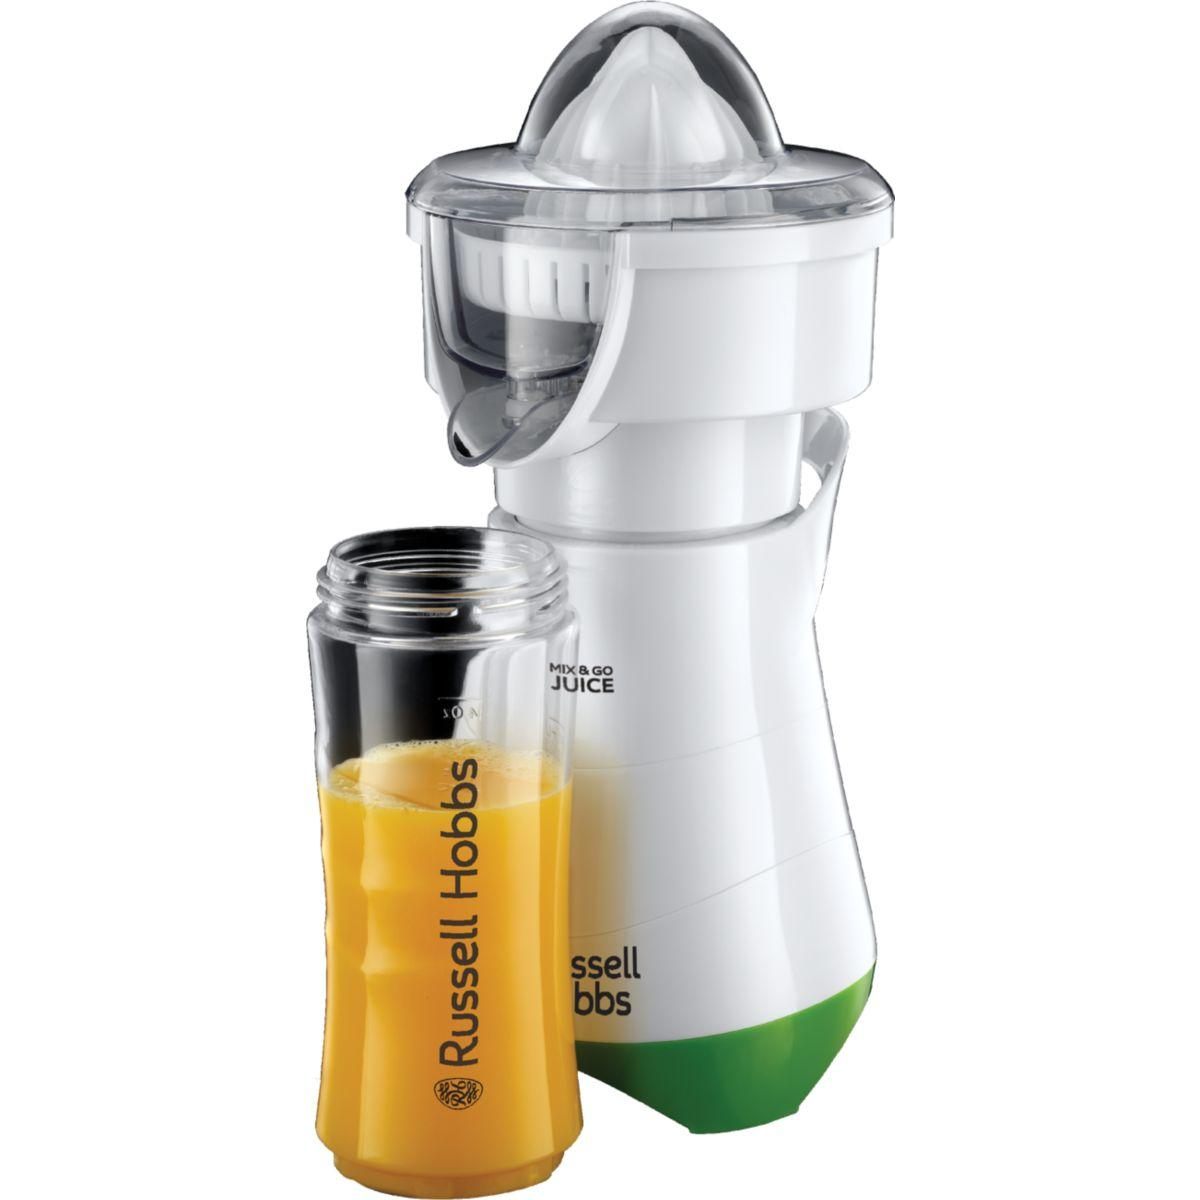 Blender russell hobbs mix & go juice explore 21352-56 - 5%...